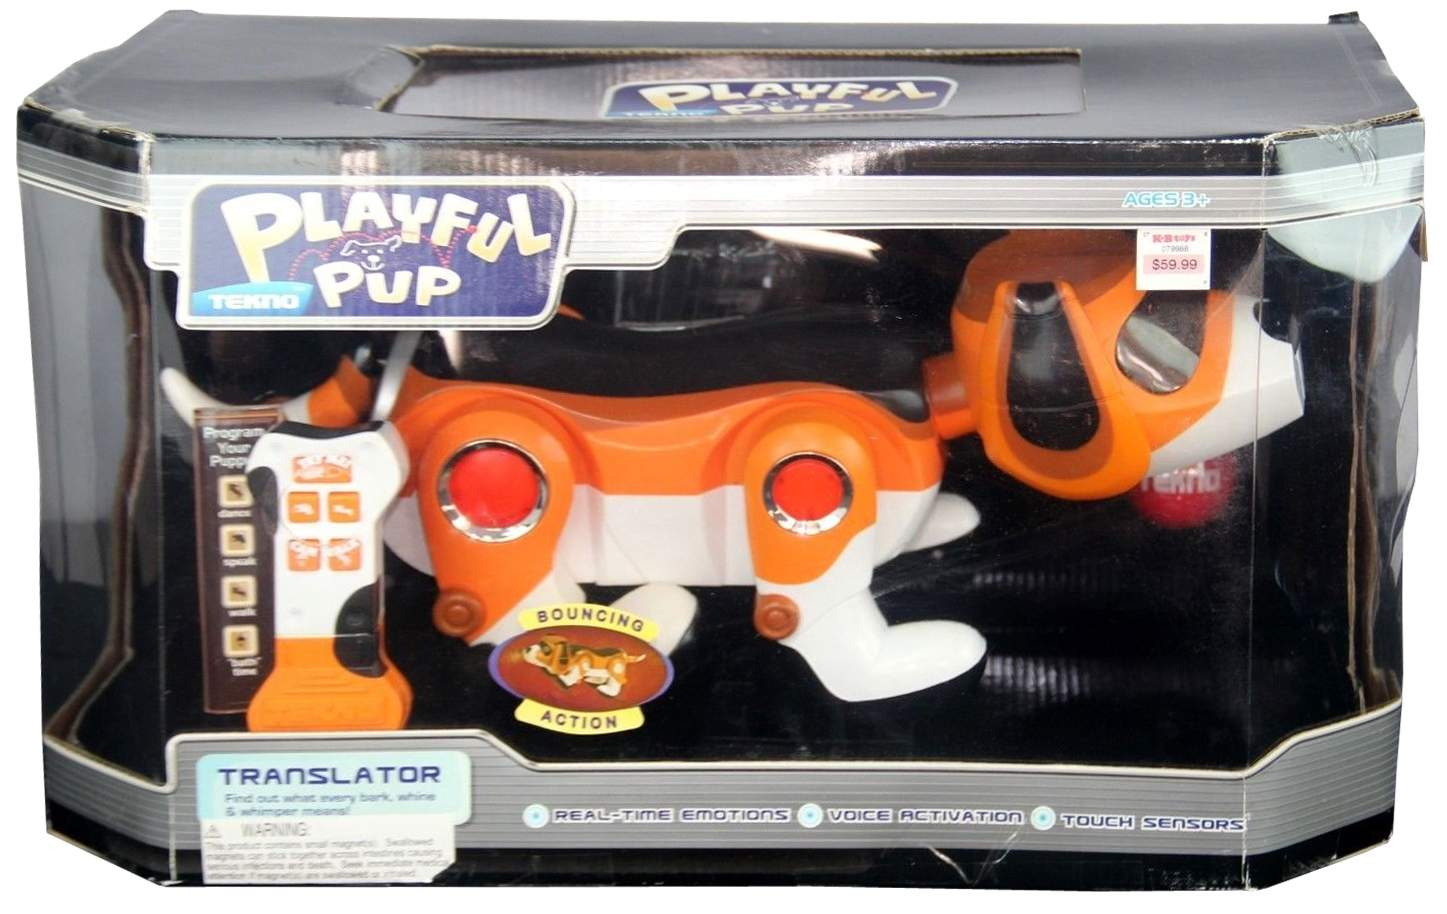 Tekno The Robotic Puppy The Old Robots Web Site